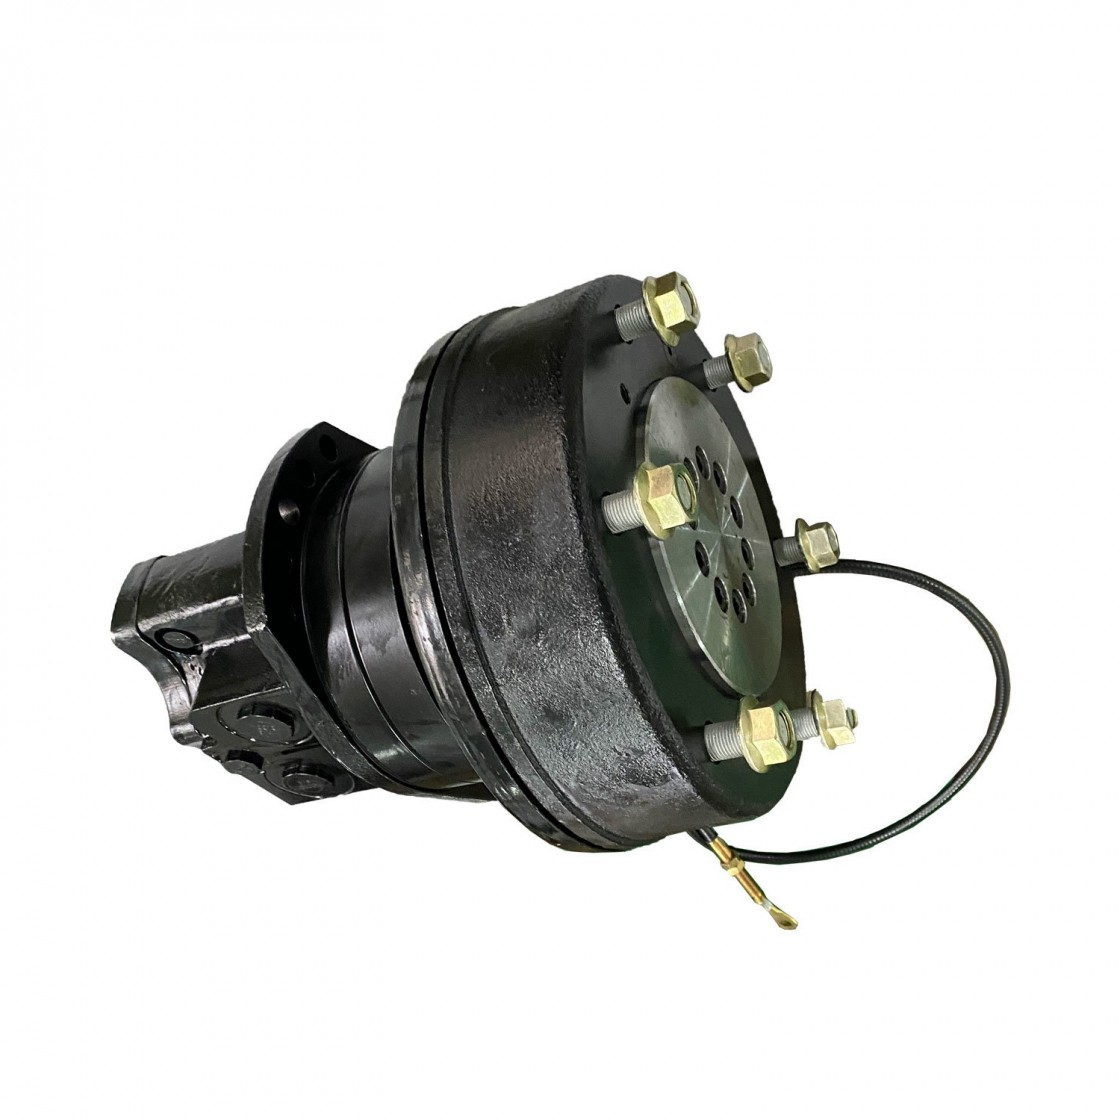 Case 84256617 Reman Hydraulic Final Drive Motor